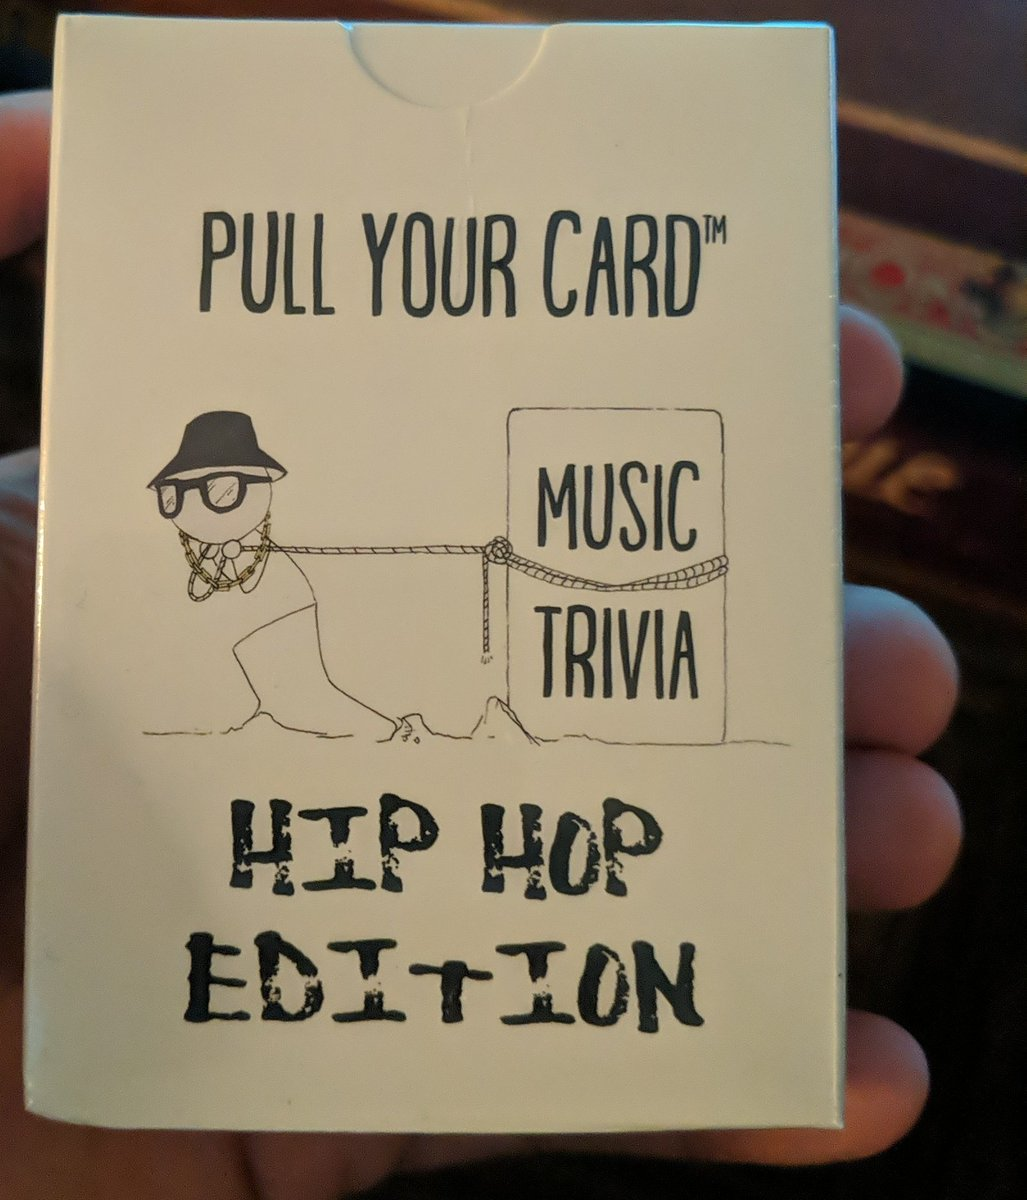 """Not the Game Boy, but this is the game boy. If you lose it's not a game boy #bars 😂 Save 20% with code """"MaskUp"""" at https://t.co/HAgwy7DCPb #gameboy #maskup #trivia #hiphoptrivia #Cybermonday2020 https://t.co/DP9ySuybxf"""